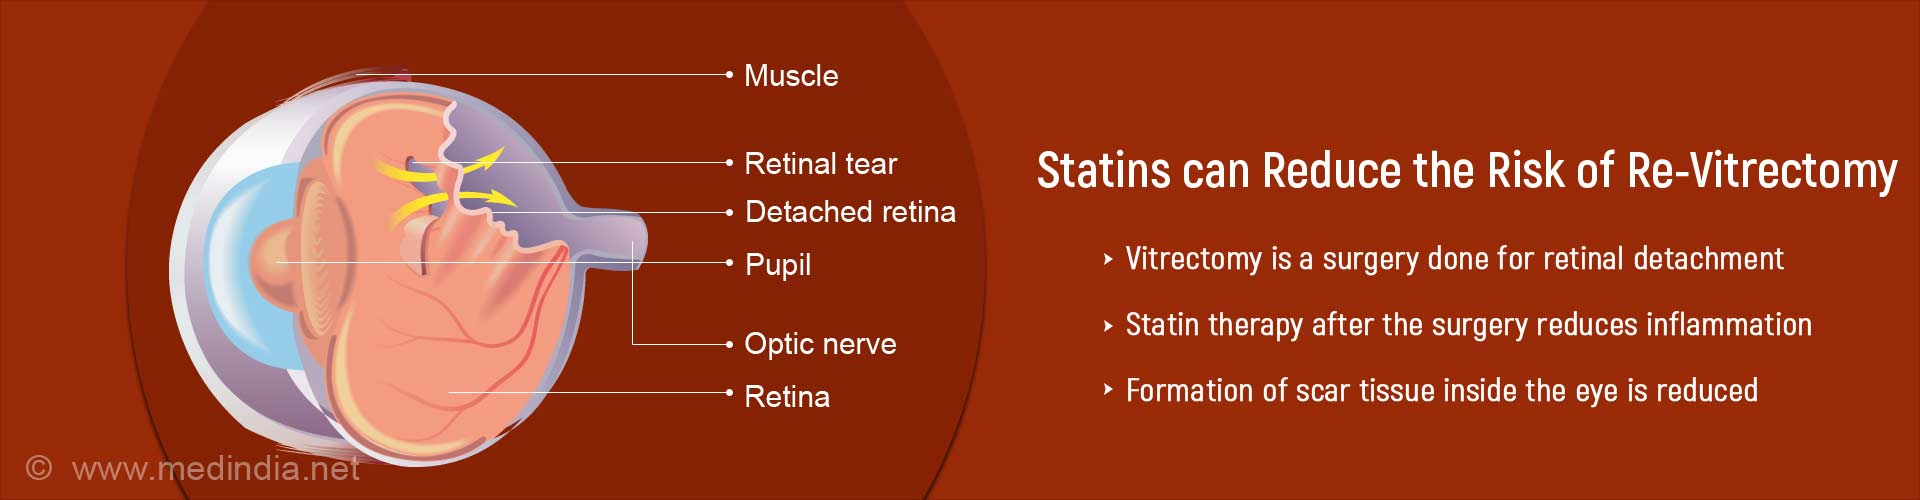 Statins Can Help Prevent Scar Tissue After Eye Surgery